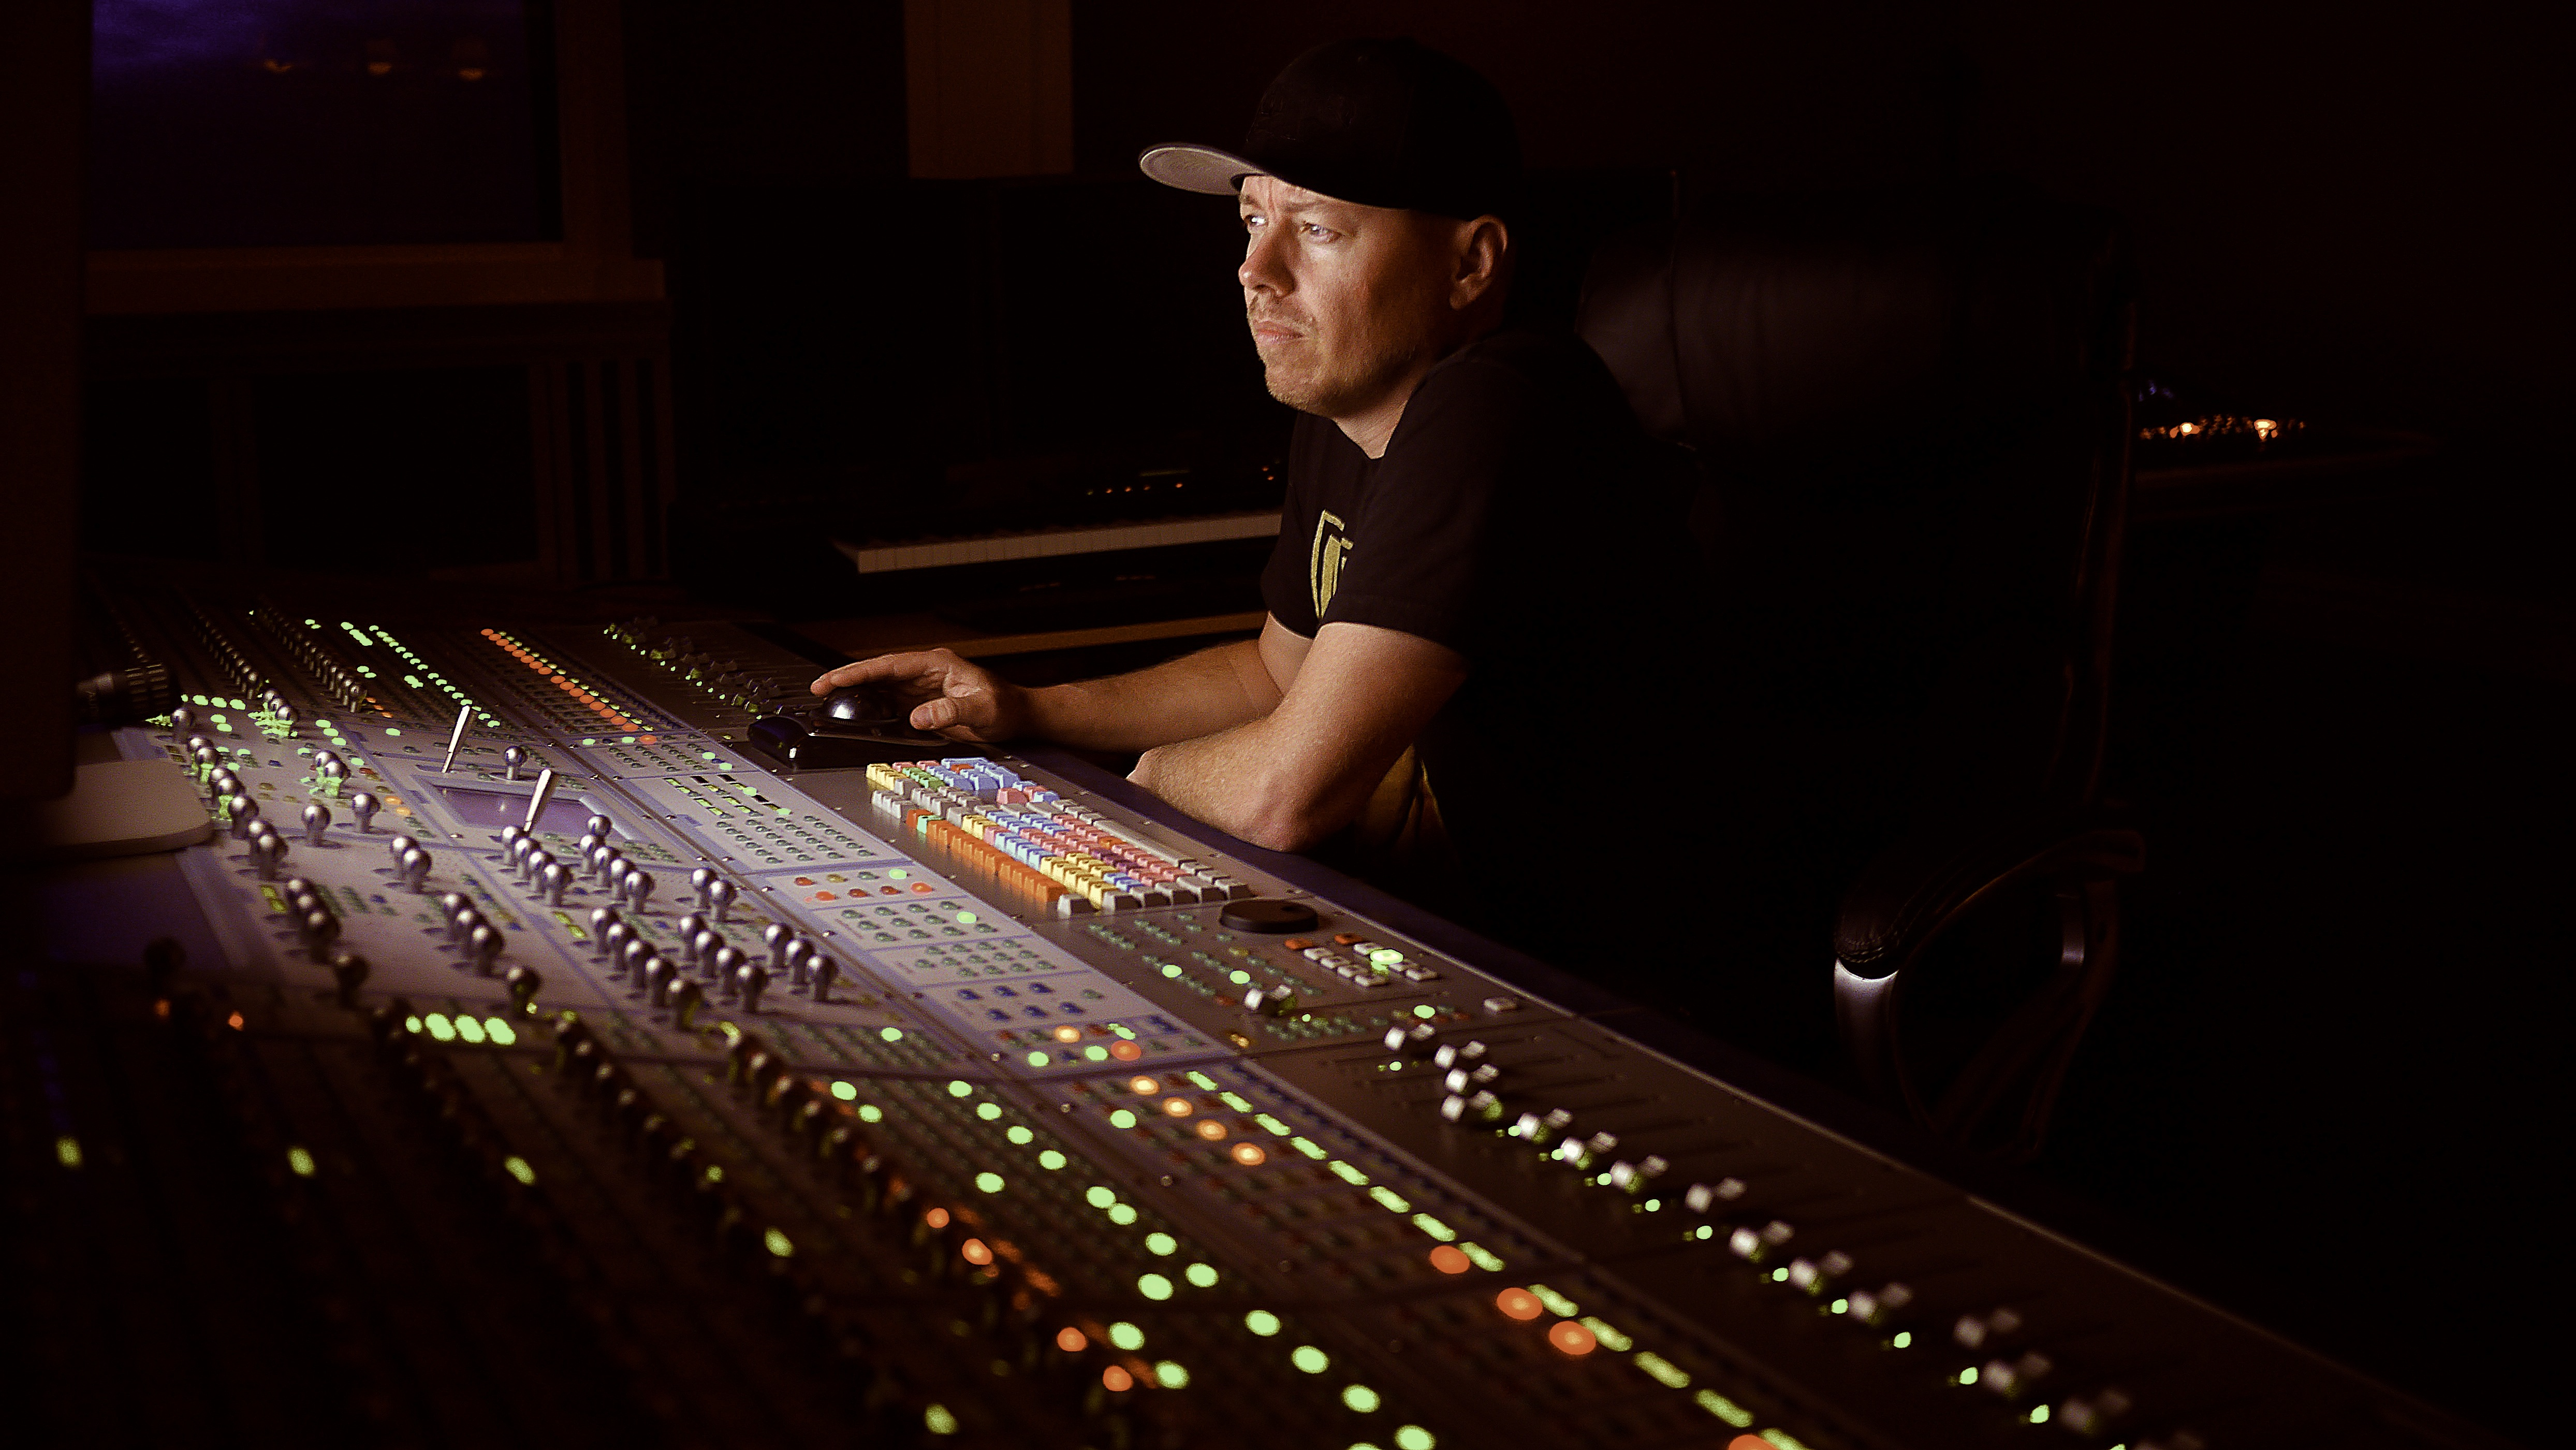 Professionally Master your Recording.